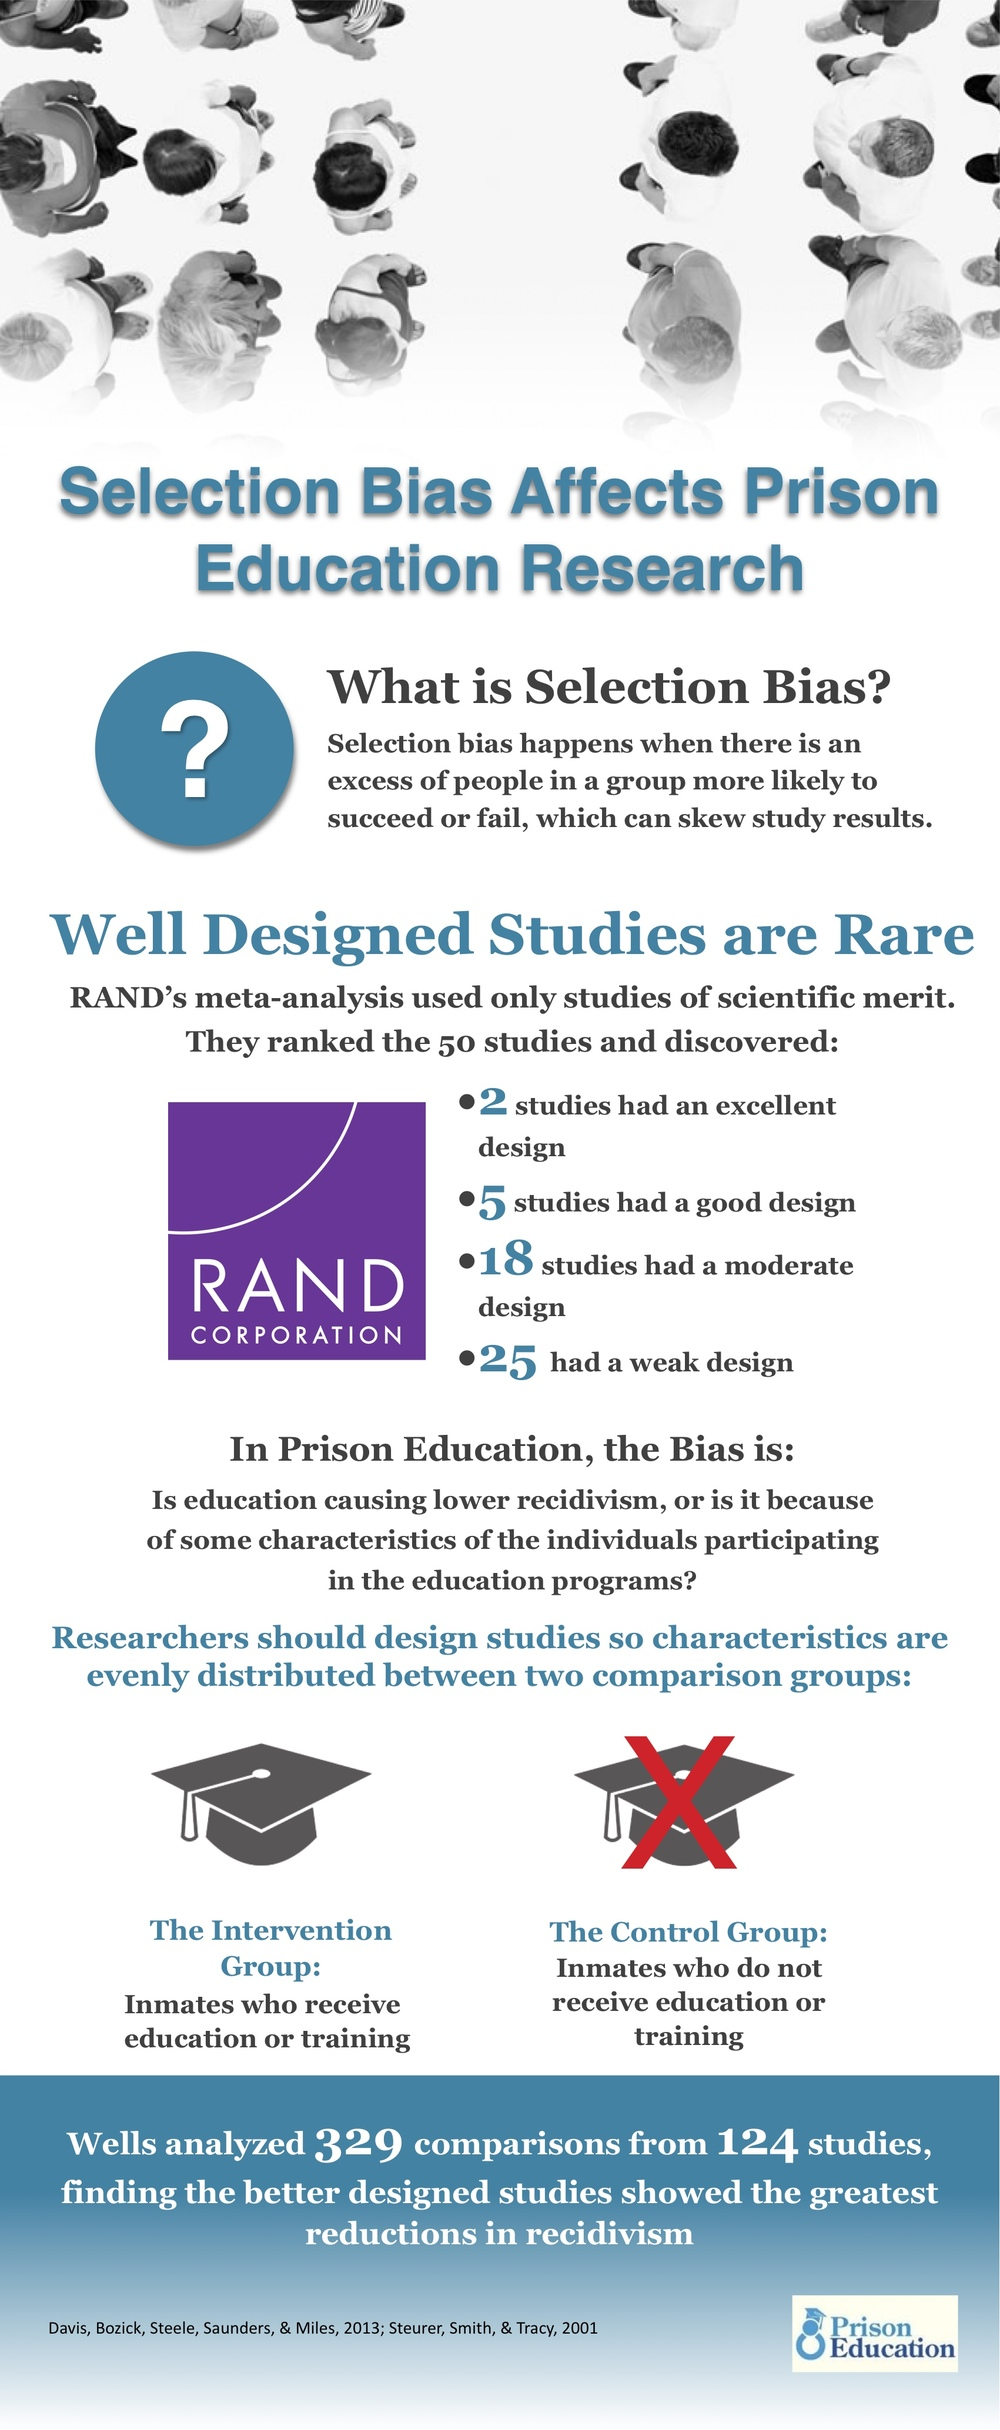 Researchers must understand selection bias when it comes to conducting and designing studies.